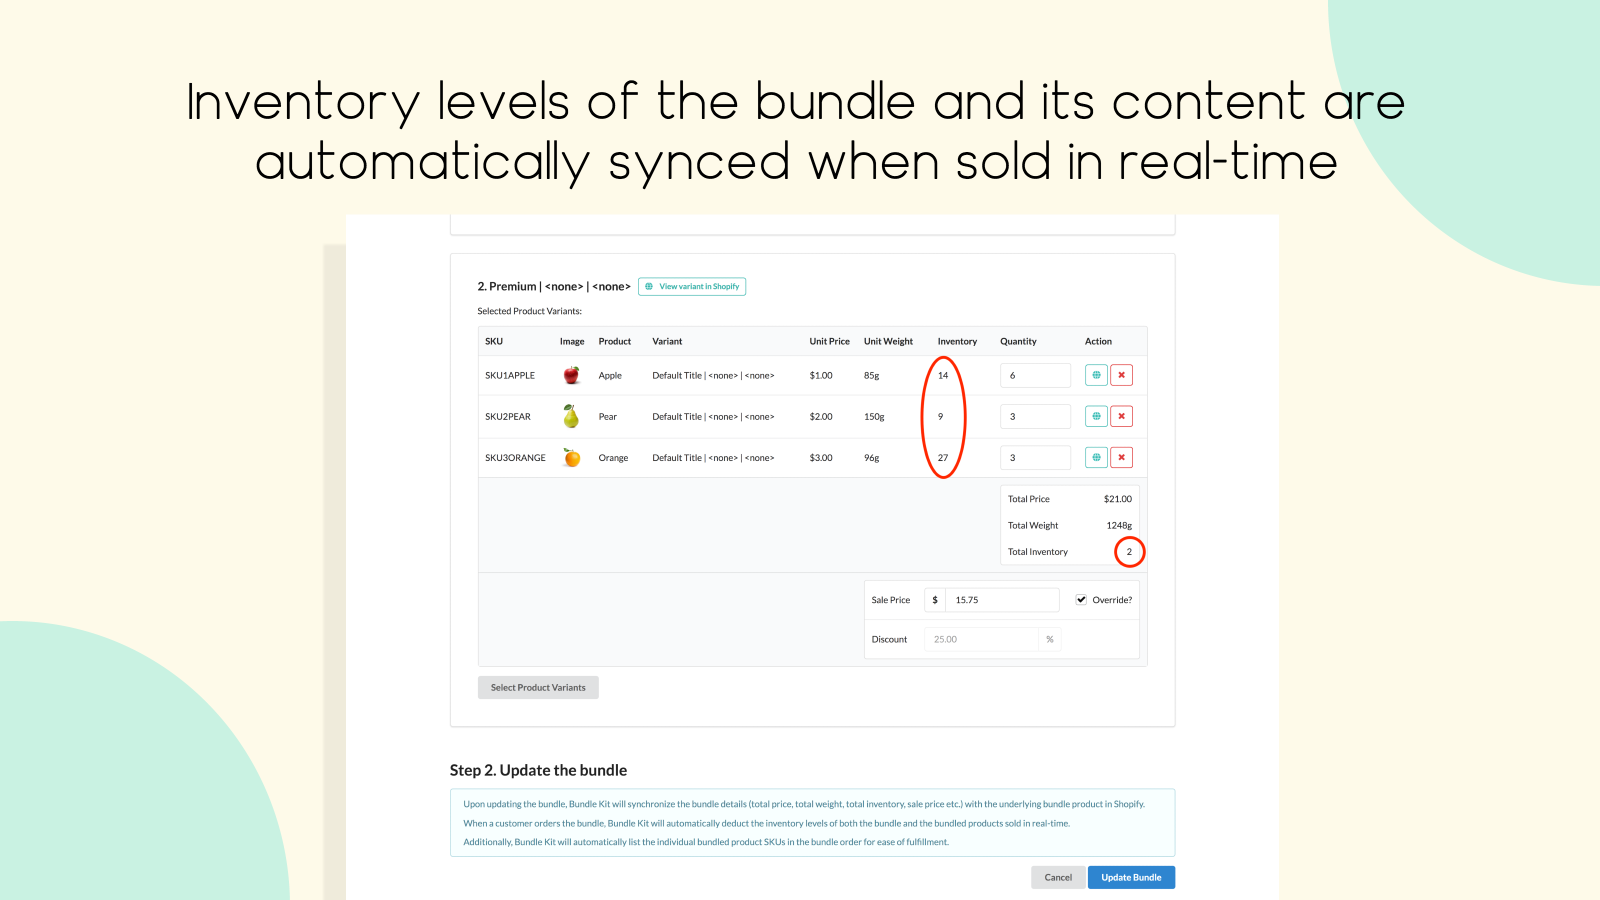 Bundle inventory is automatically synced when sold in real-time